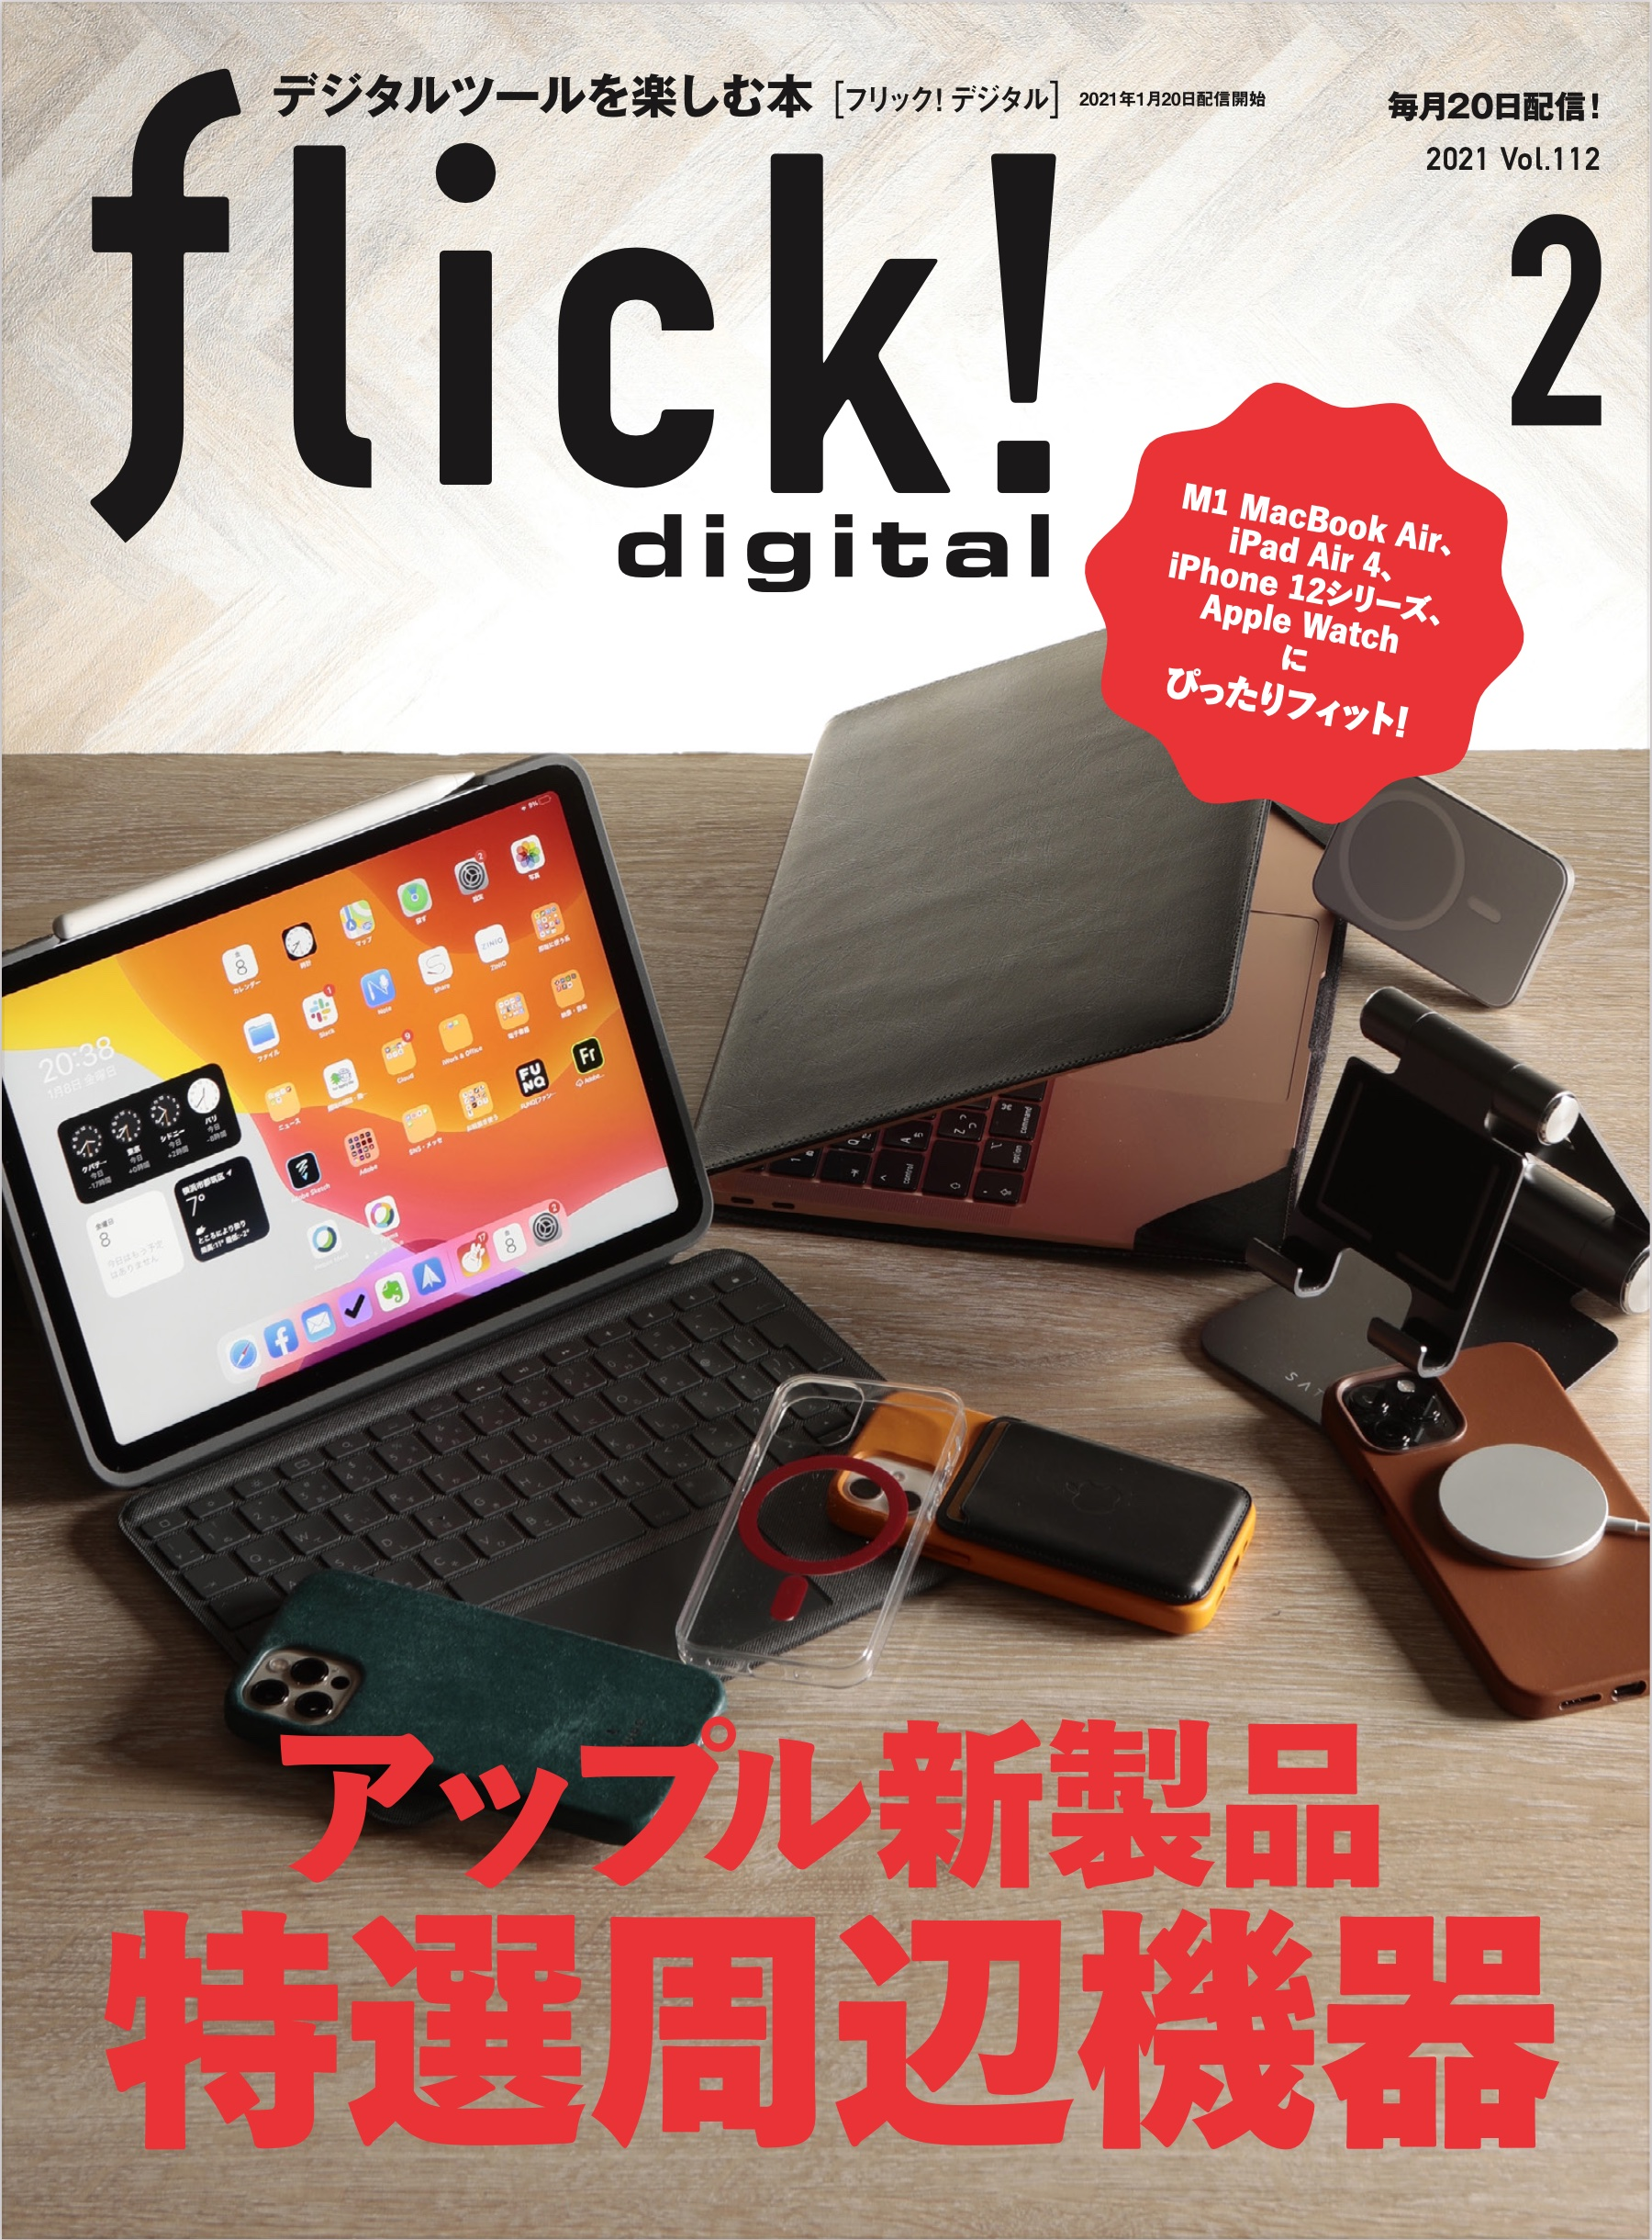 flick! digital (フリック!デジタル) 2021年2月号 Vol.112